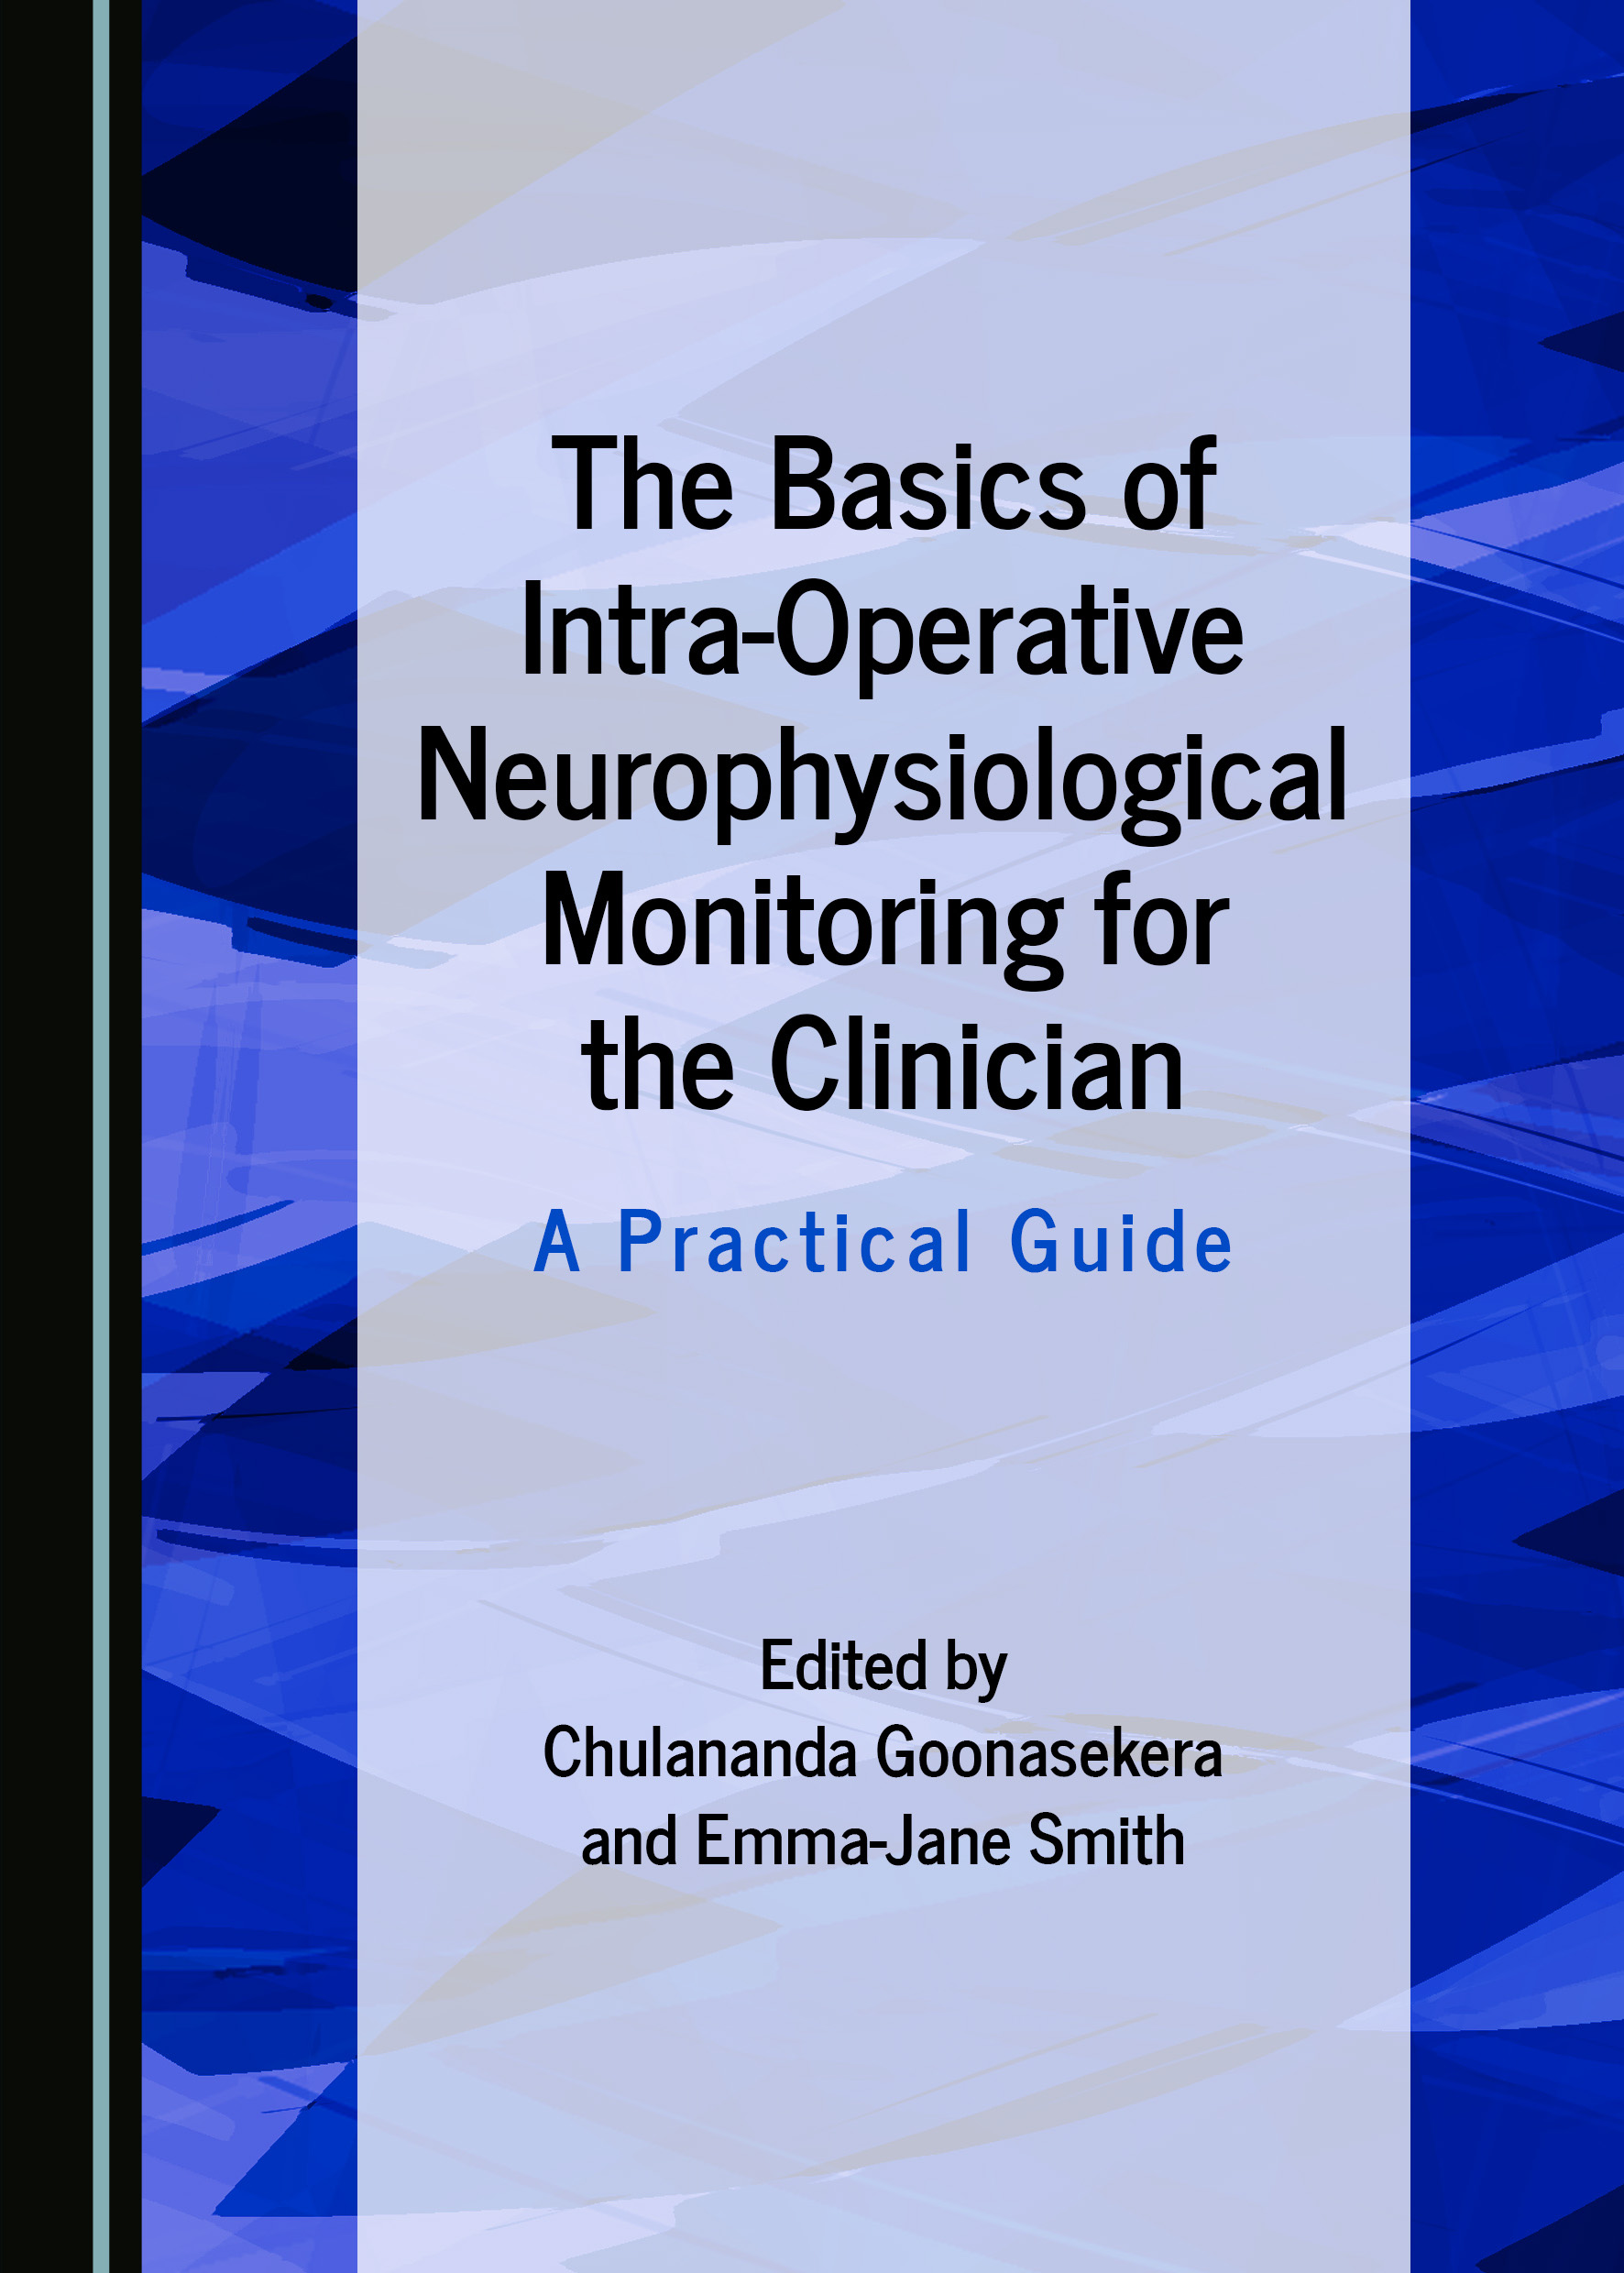 The Basics of Intra-Operative Neurophysiological Monitoring for the Clinician: A Practical Guide